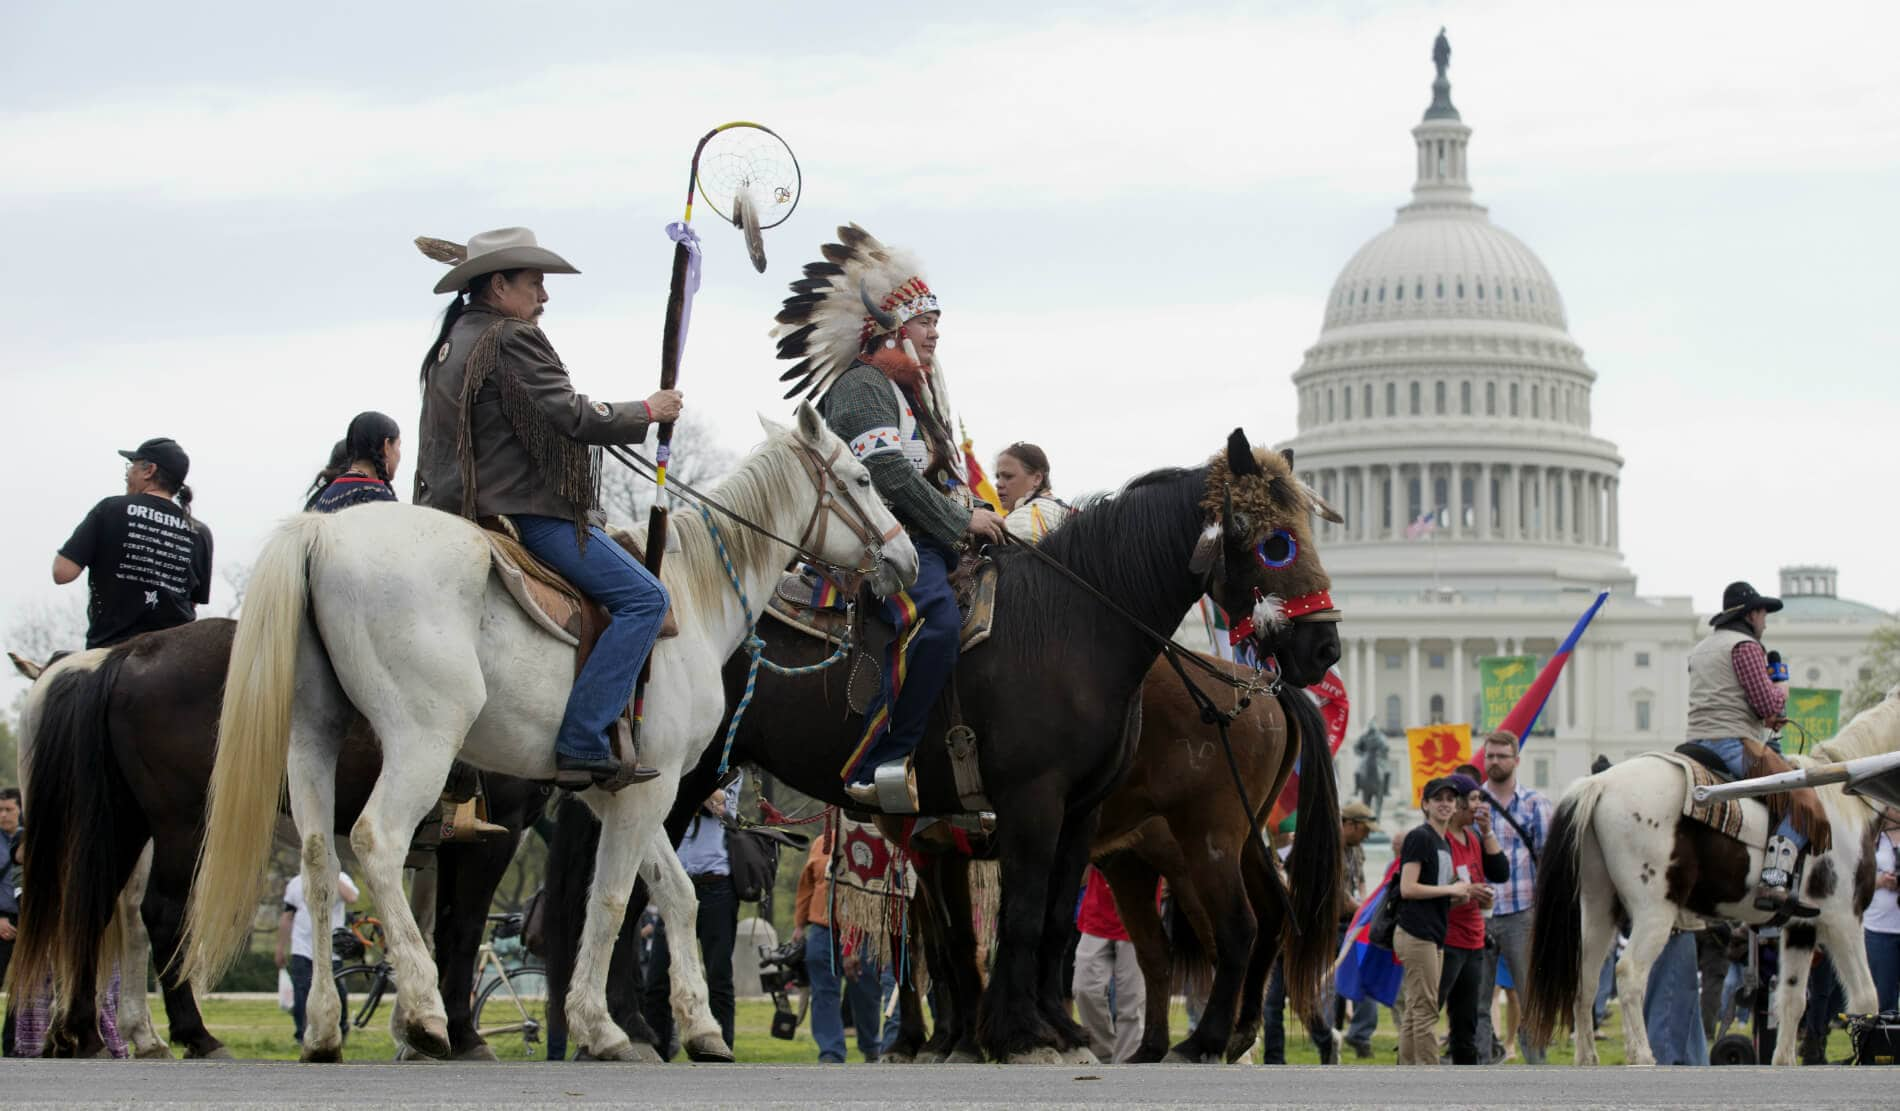 , Populist alliances of 'cowboys and Indians' are protecting rural lands